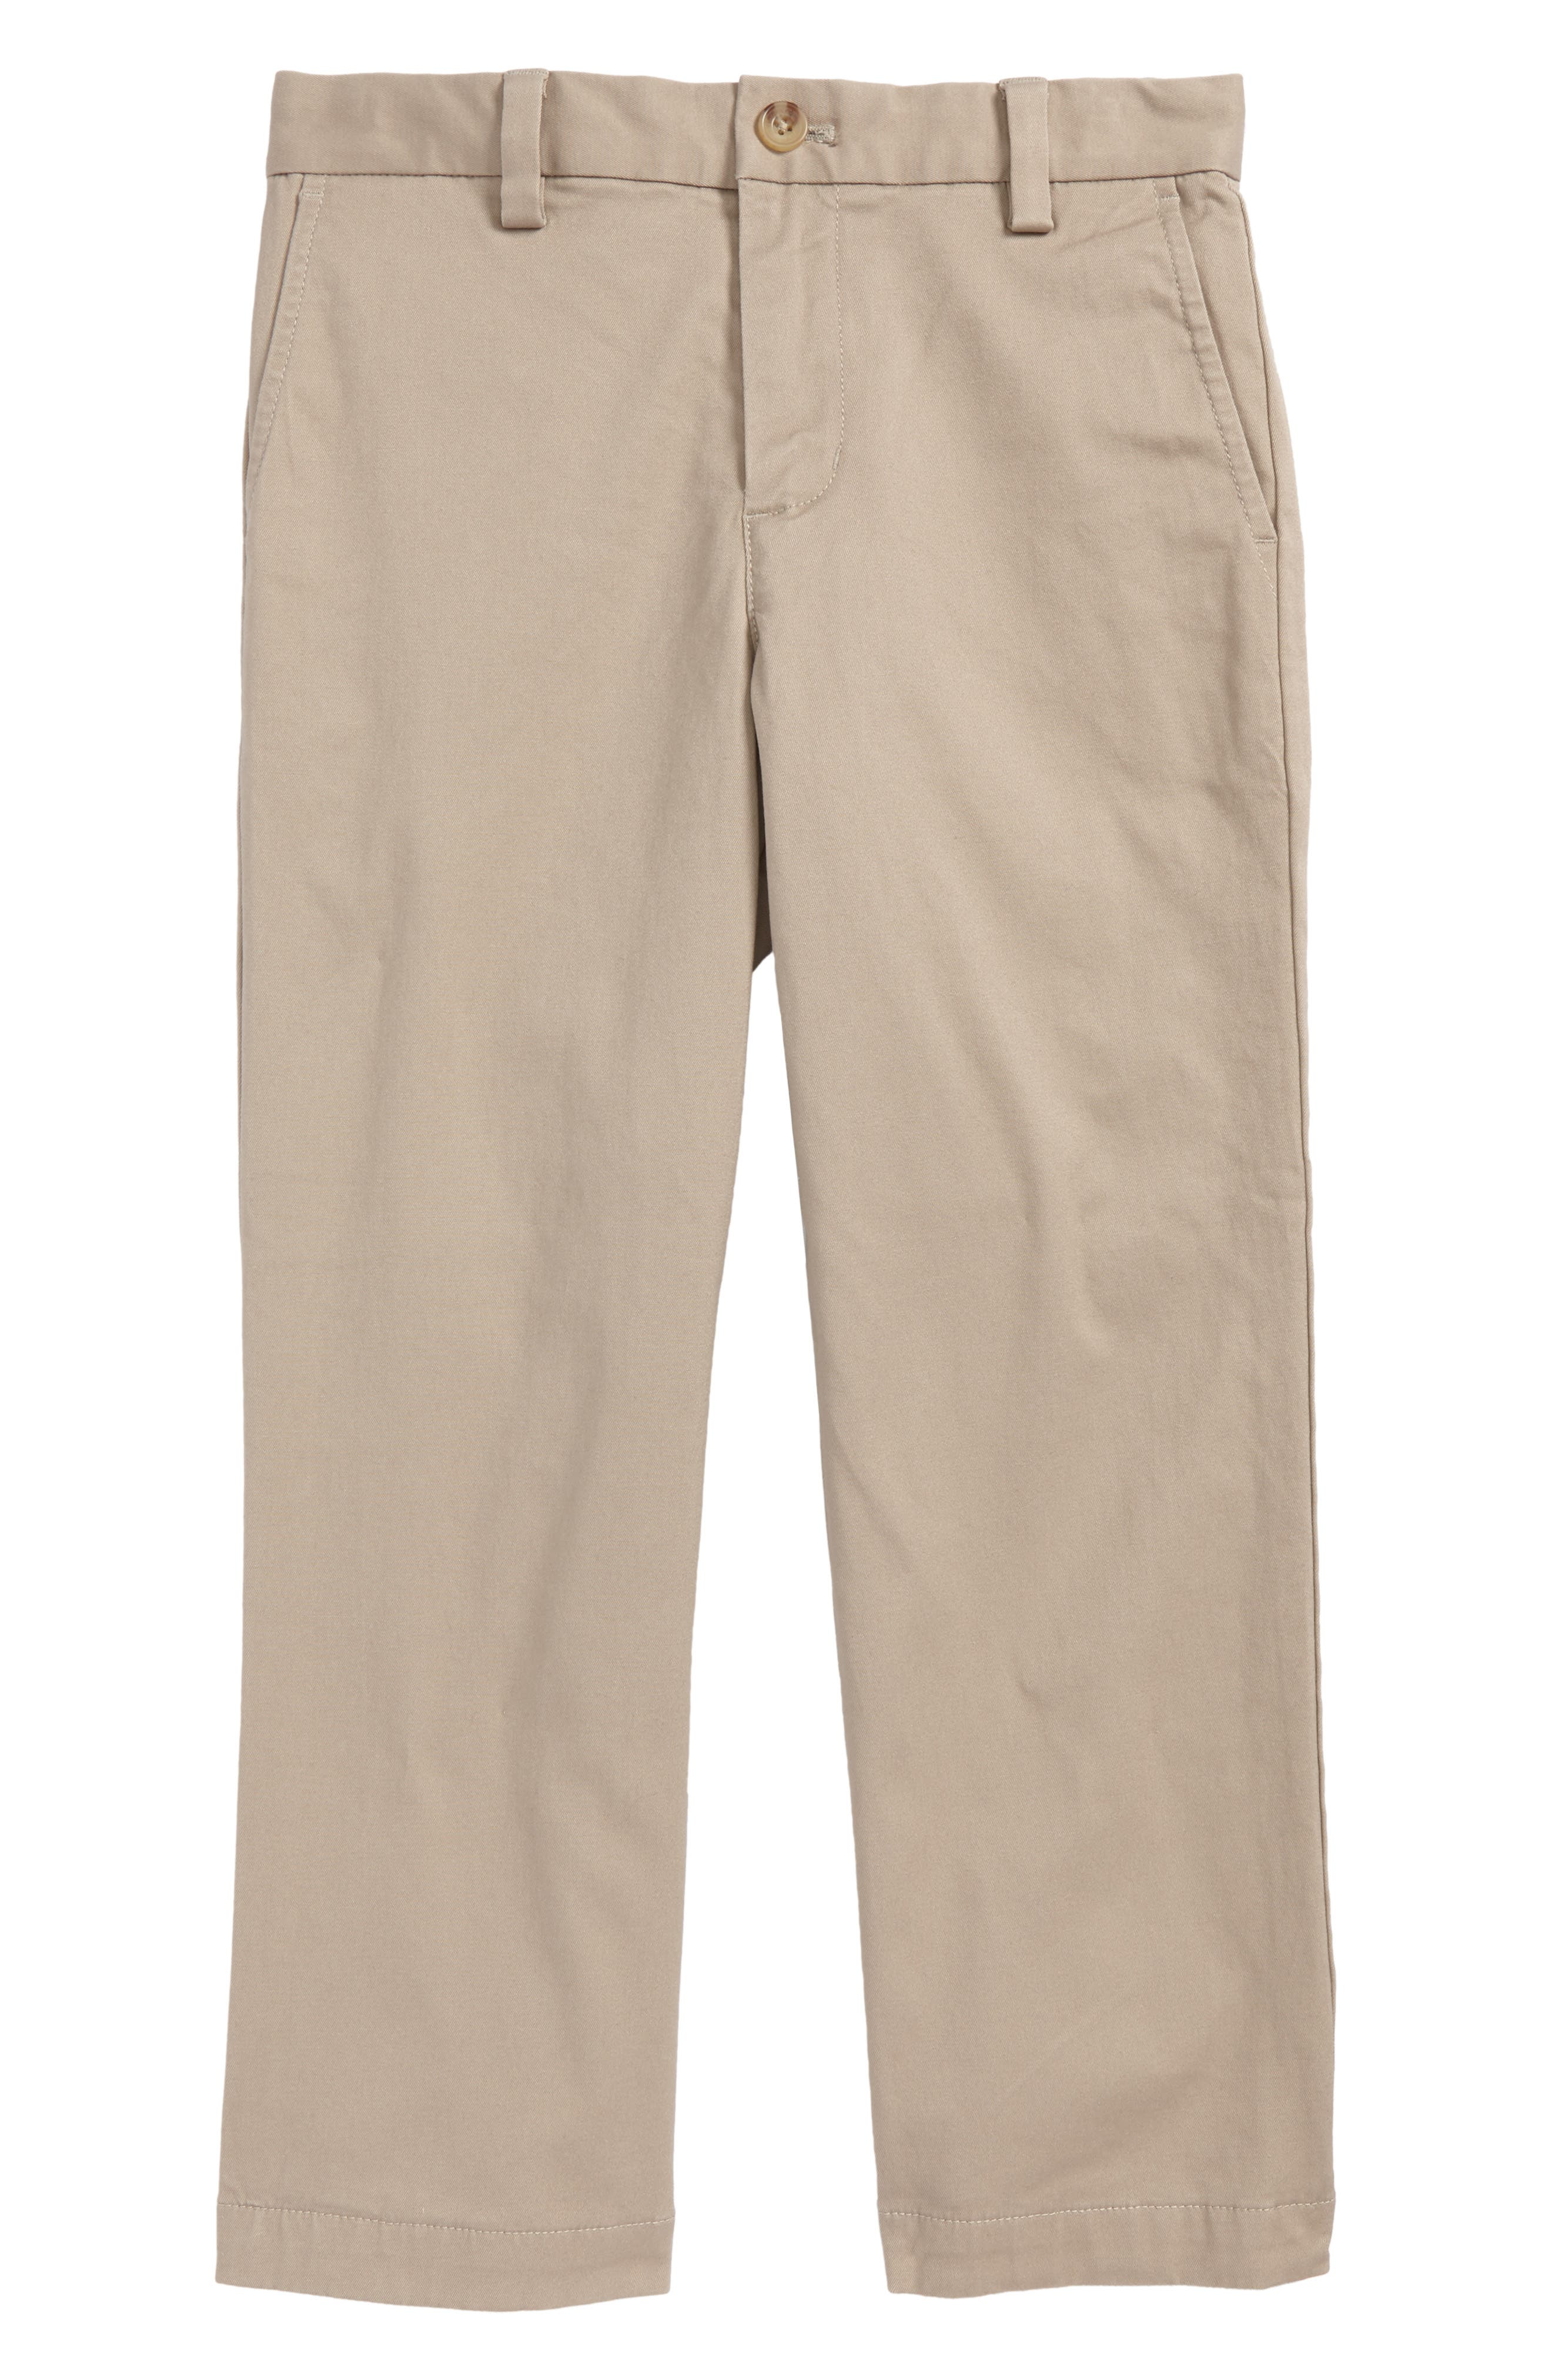 Breaker Flannel Lined Pants,                         Main,                         color, 250